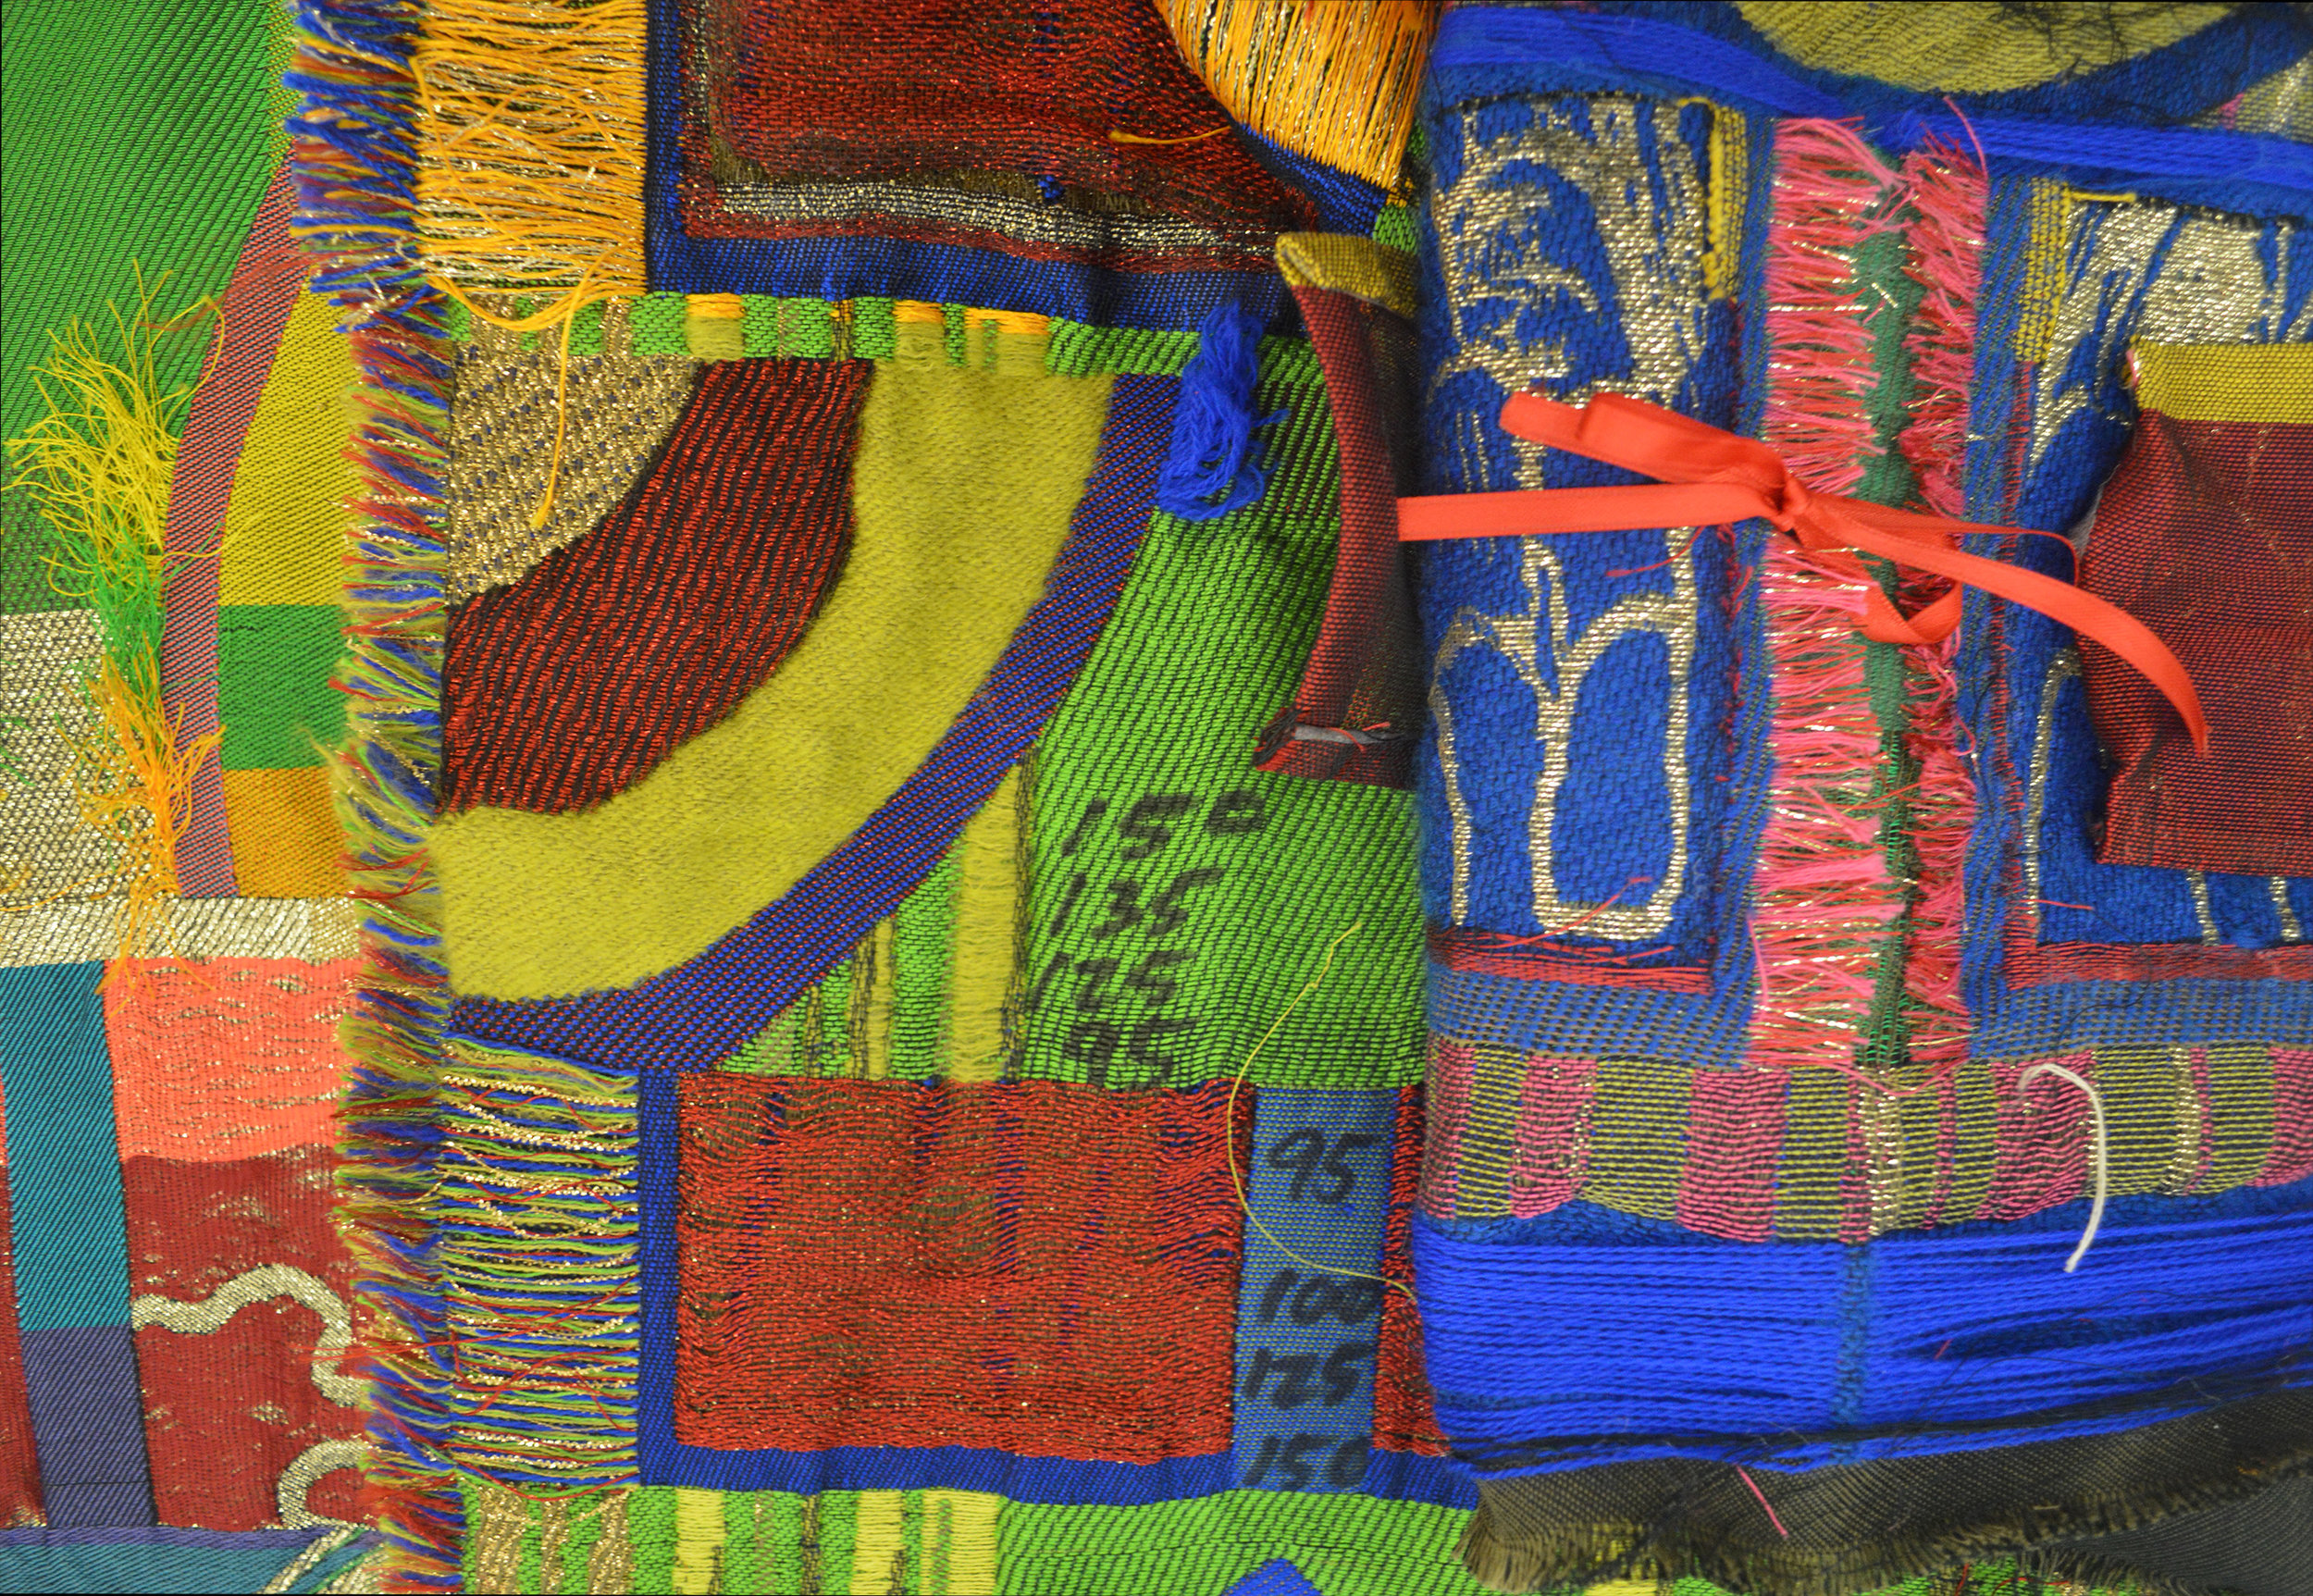 Several woven trials experimenting with various weft sequencing in material, size, and color